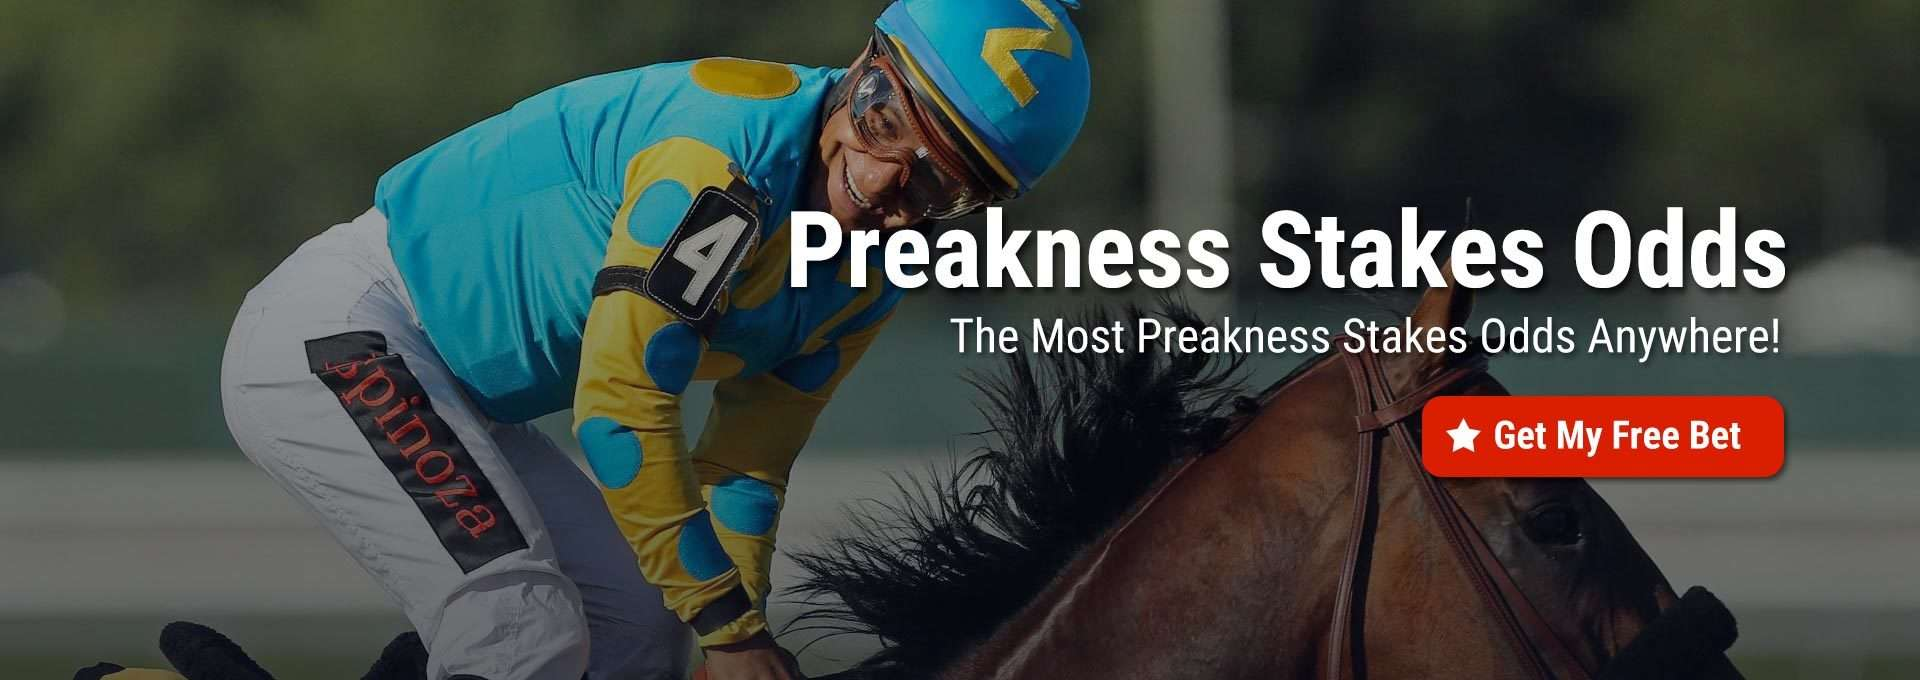 2018 Preakness Stakes Odds